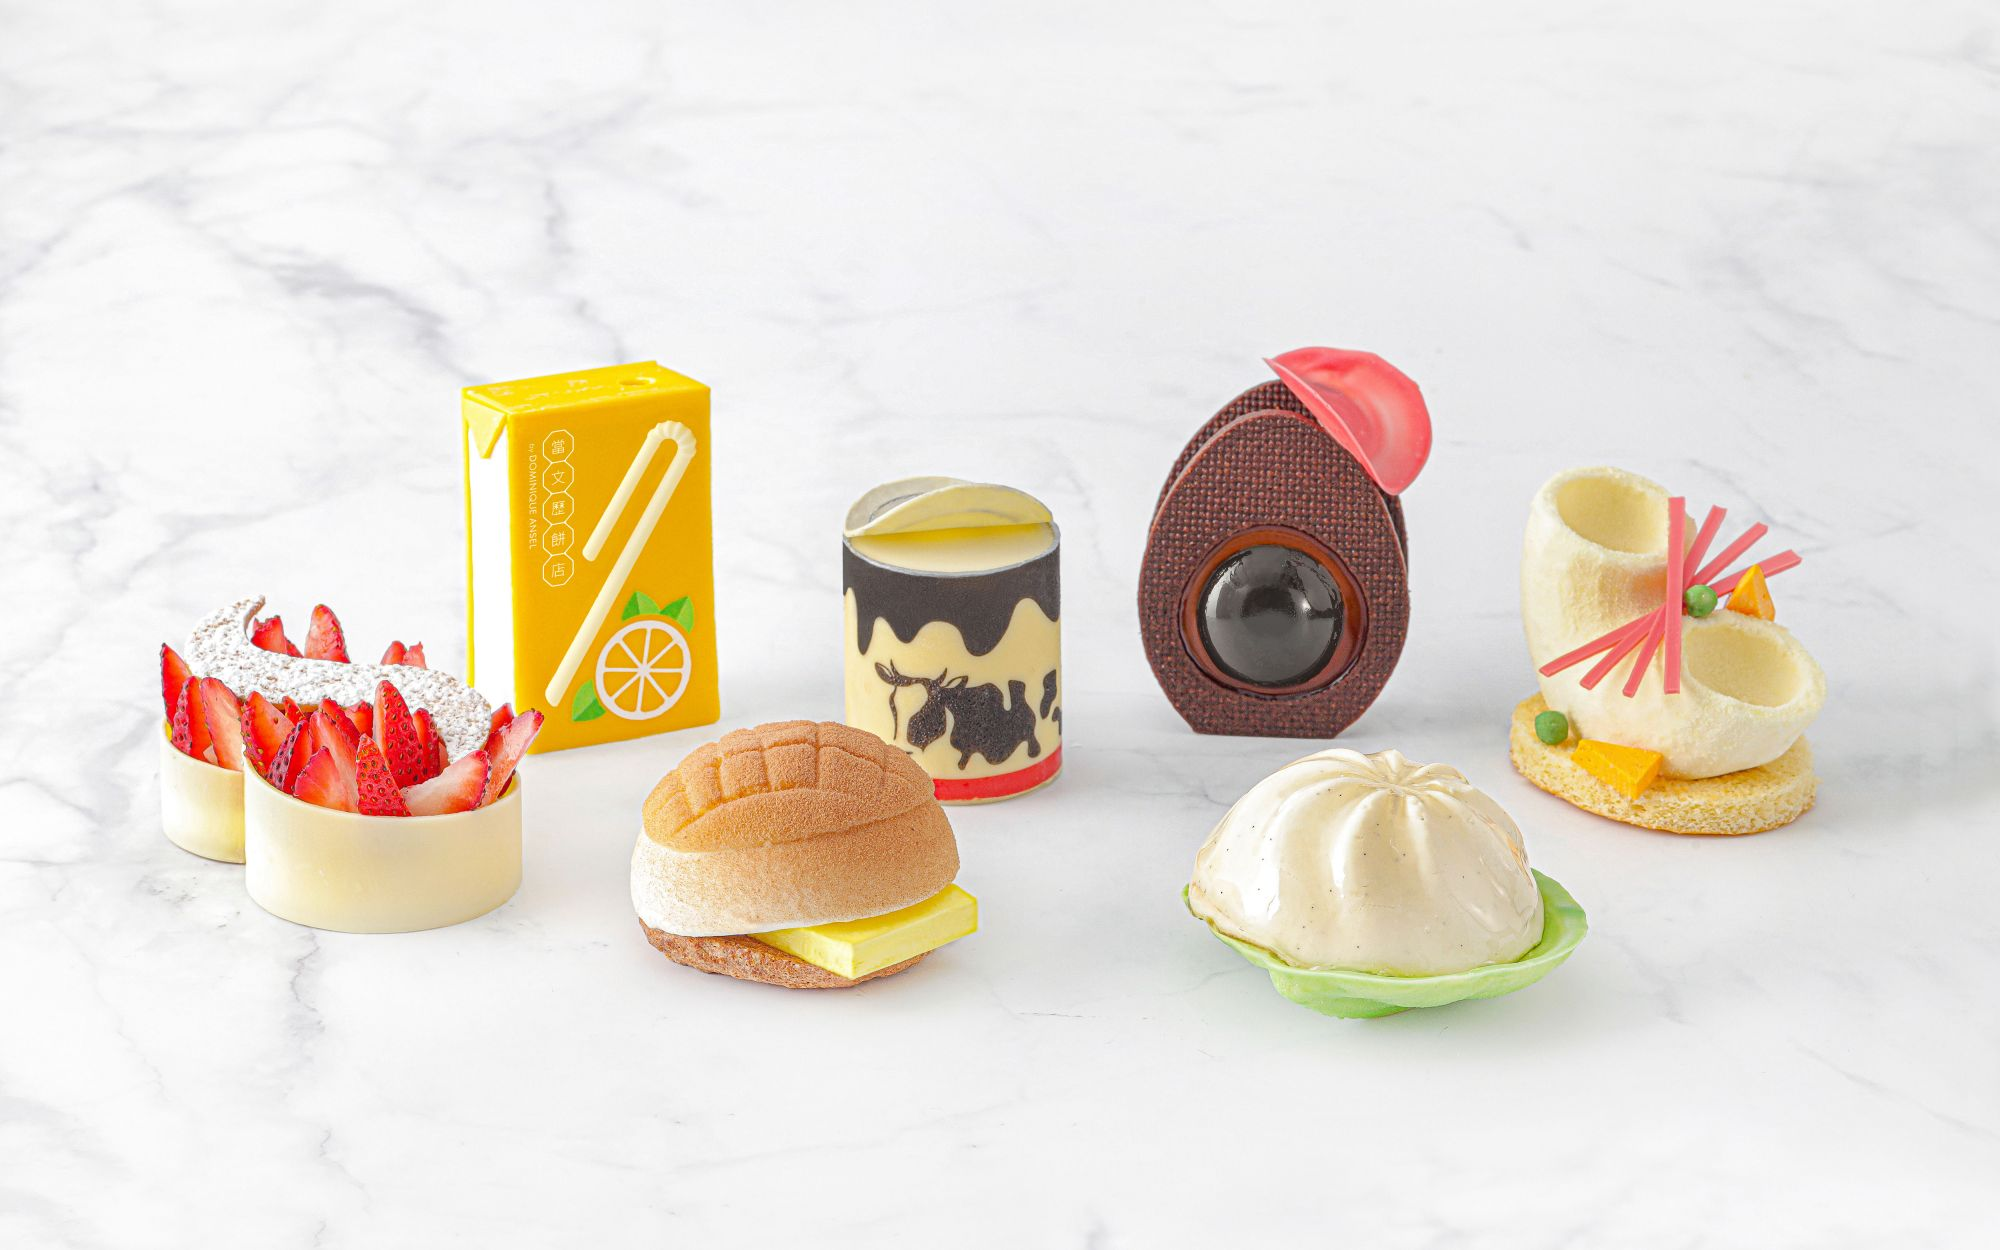 Assorted pastries at Dang Wen Li, a Hong Kong capsule collection by Dominique Ansel